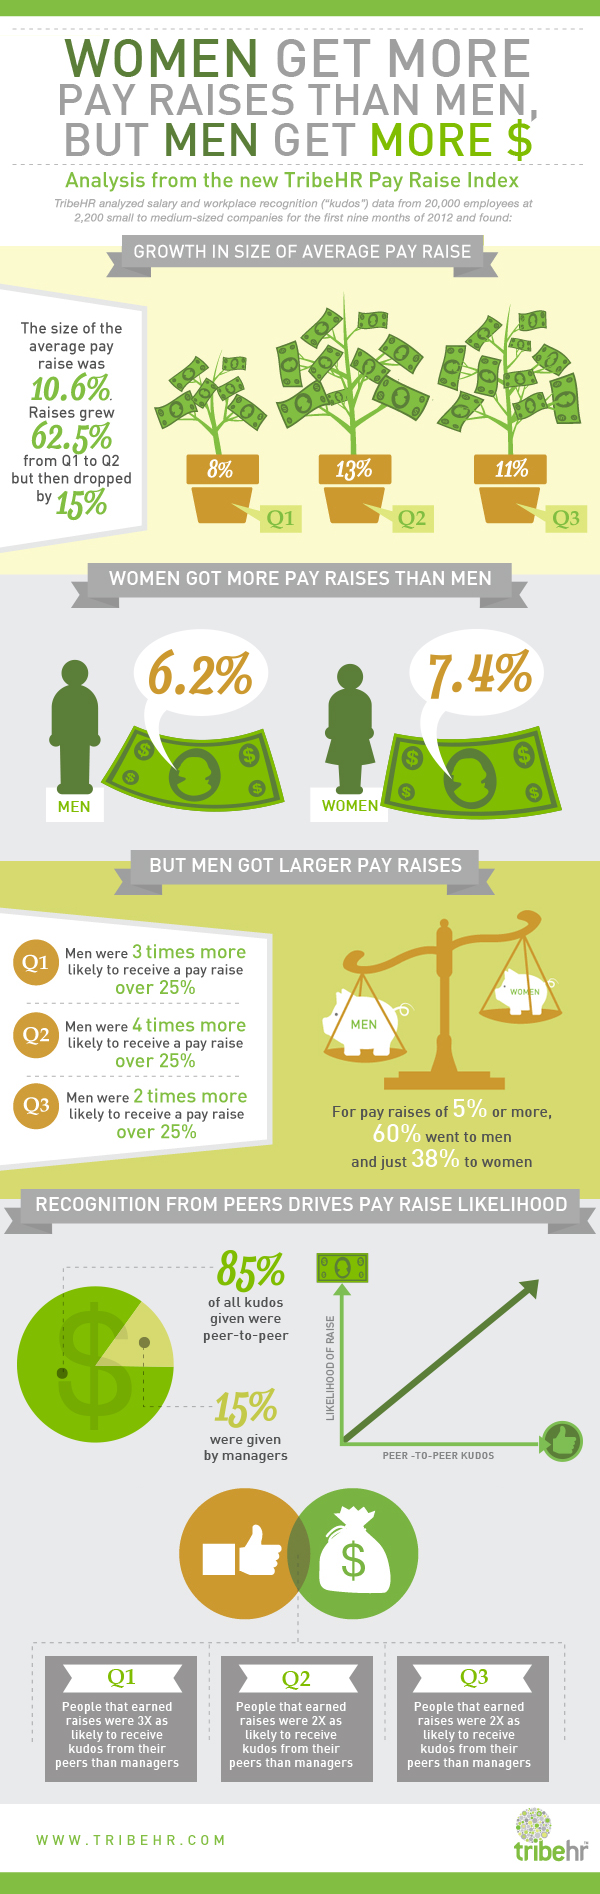 tribehr-pay-raise-infographic_50a5003a5638d